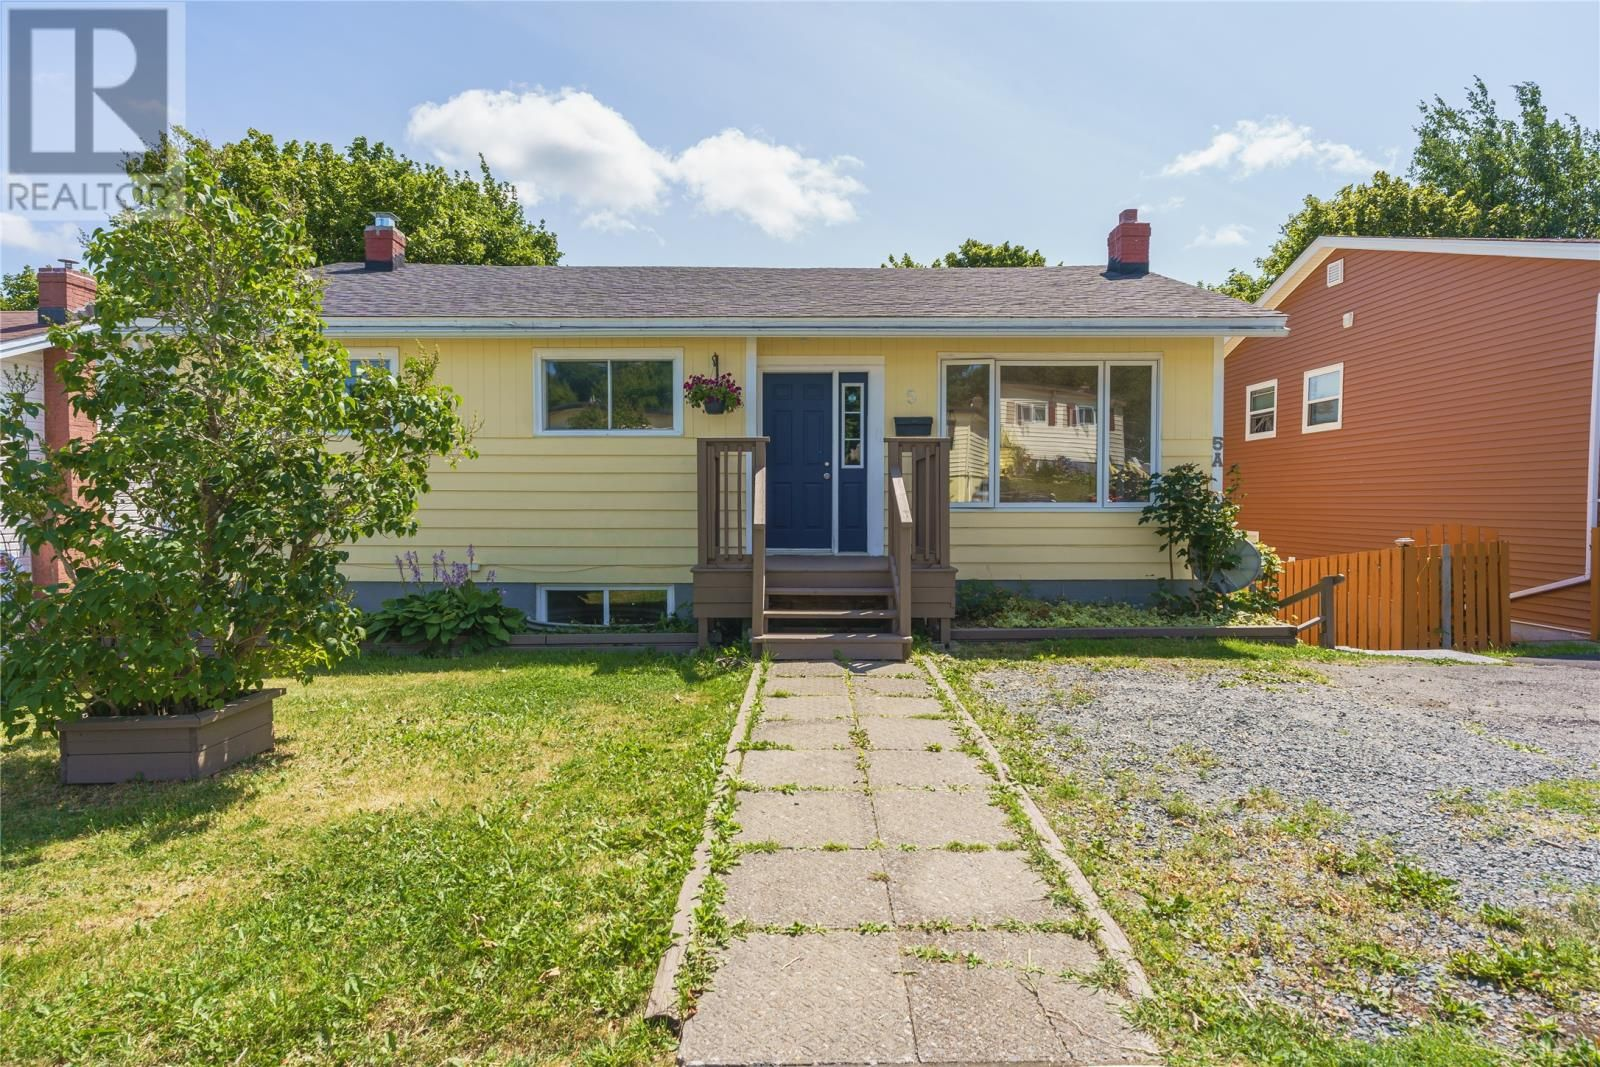 Main Photo: 5 NIGHTINGALE Road in ST.JOHN'S: House for sale : MLS®# 1235976